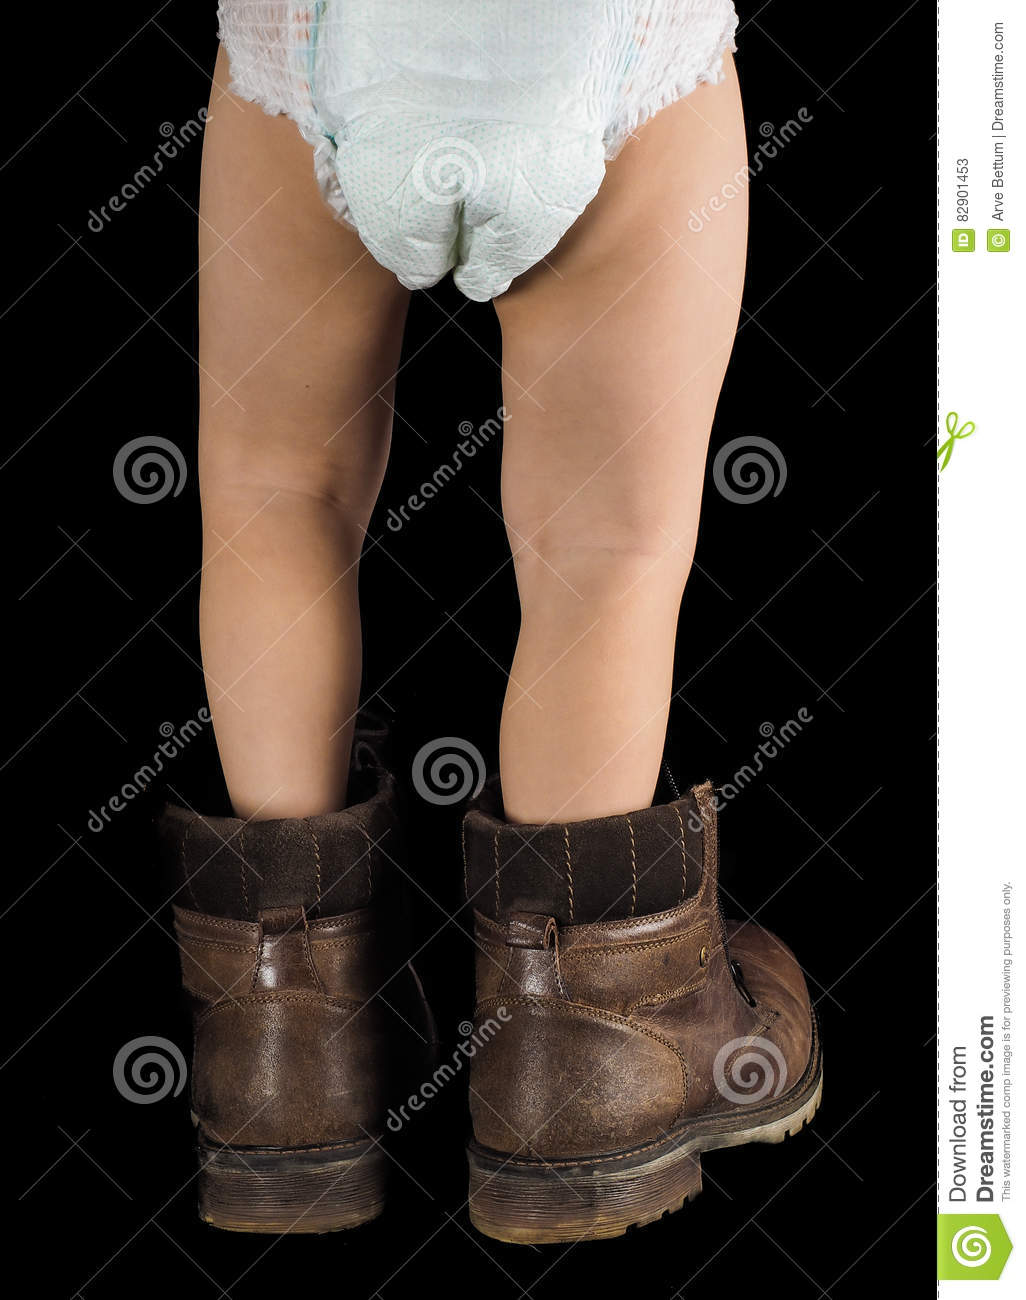 Background image too big - Toddler Boy Walking Away Towards Black Background In Too Big Boots